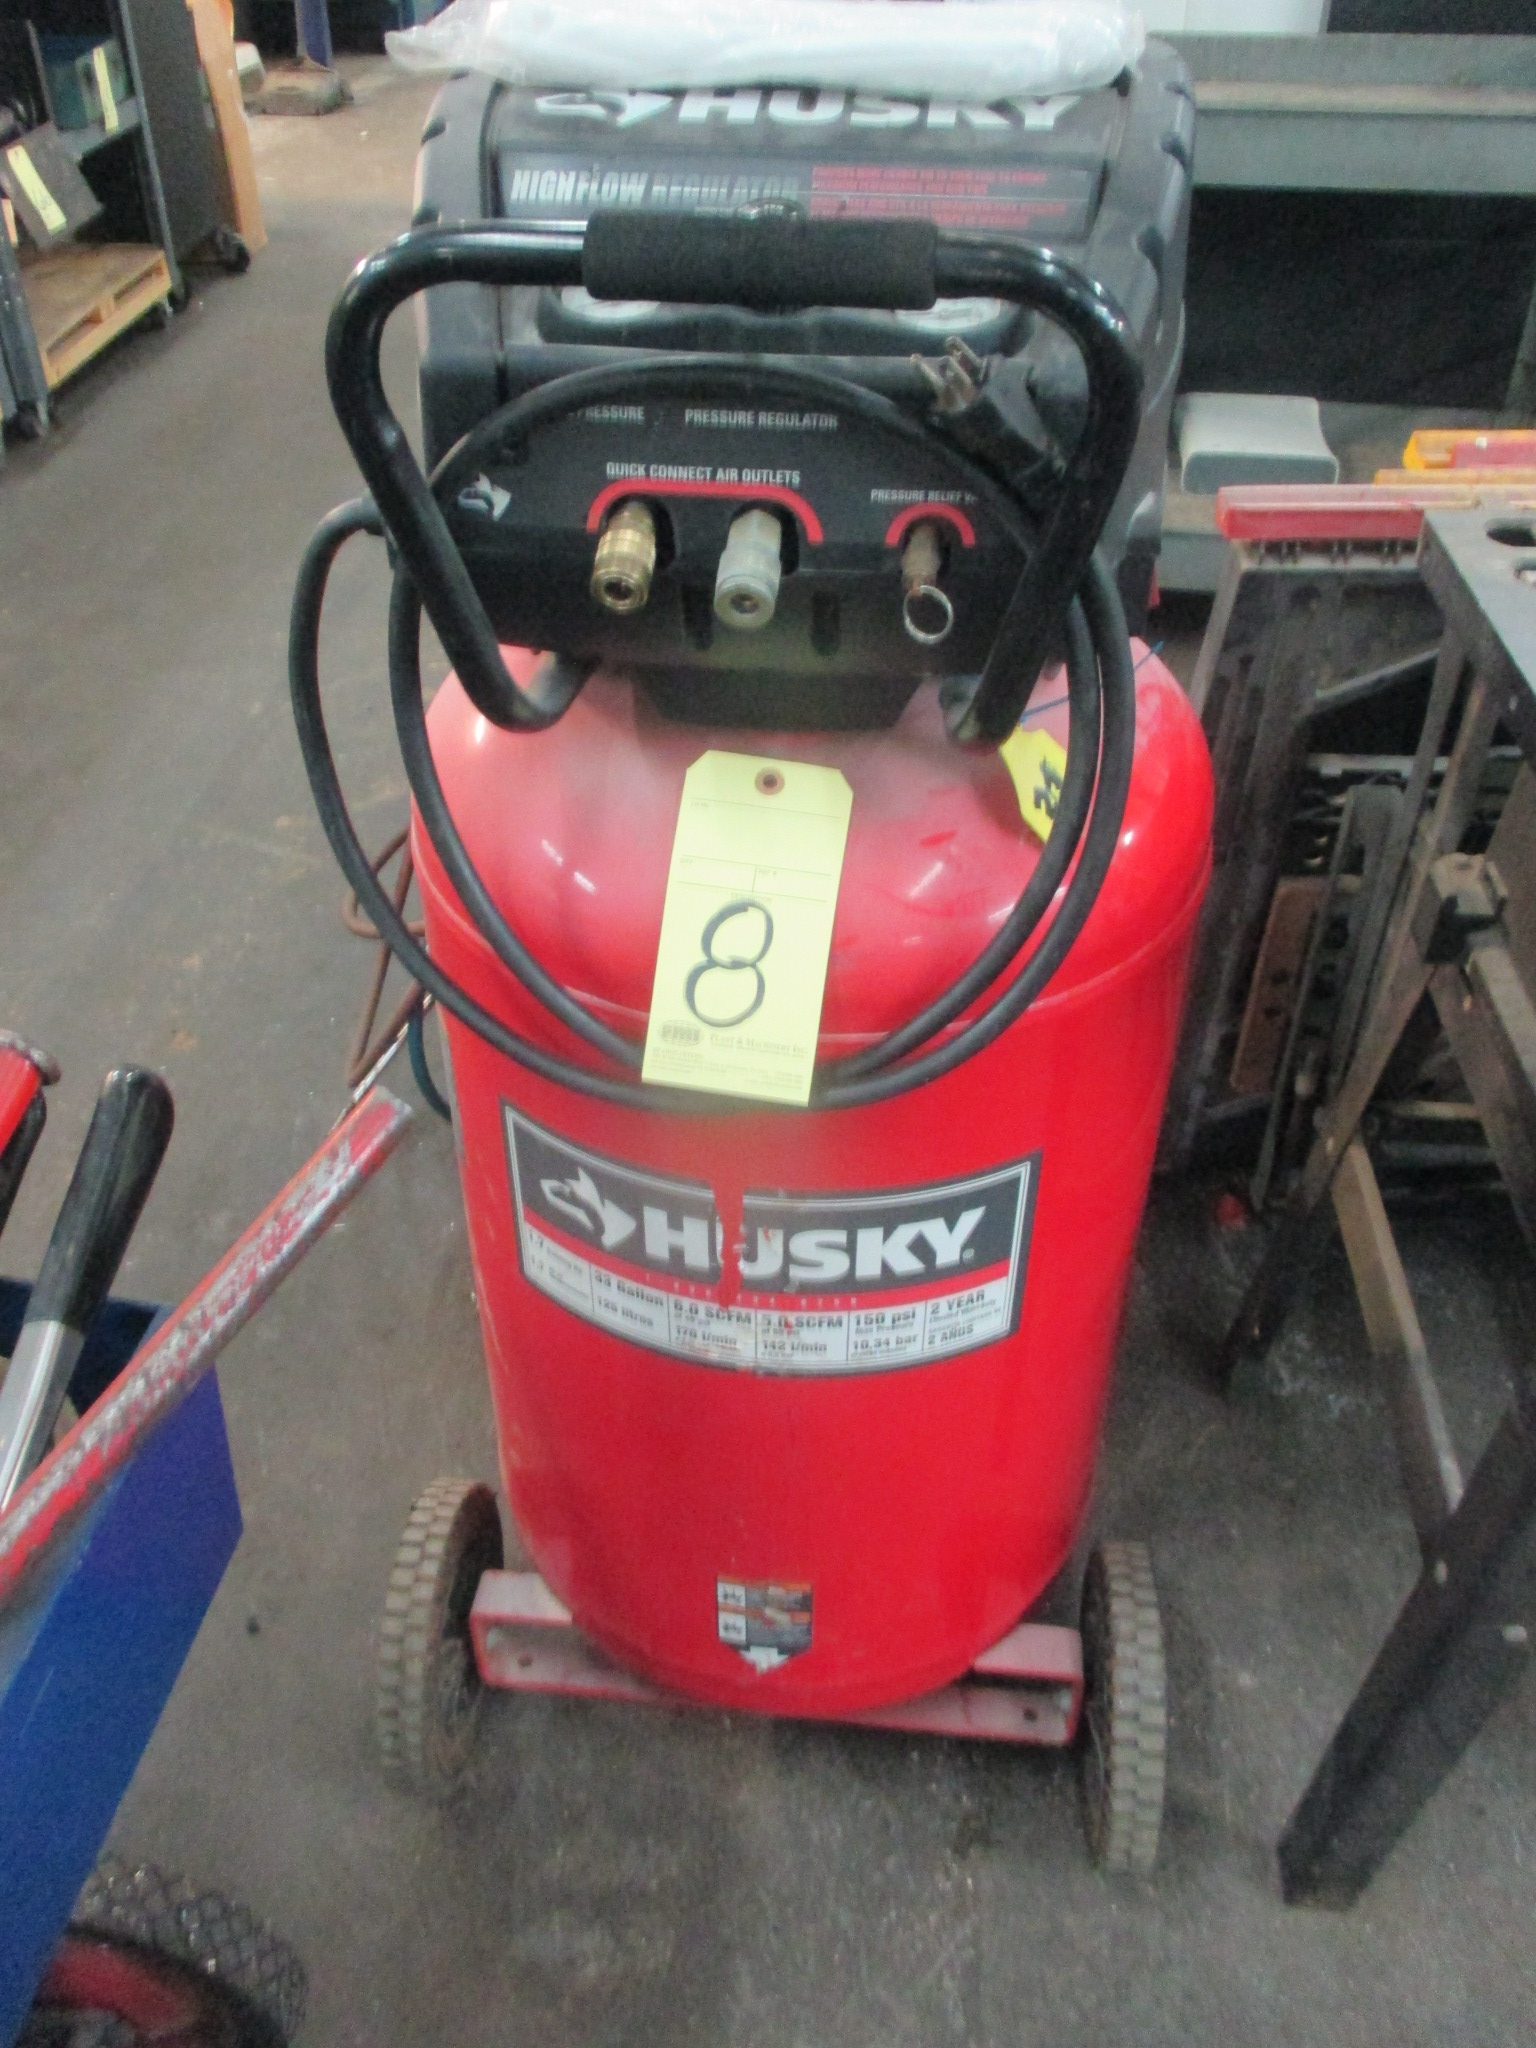 Lot 8 - PORTABLE AIR COMPRESSOR, HUSKY, 33 gal. vert. tank, 5 SCFM @ 90 PSI, roller cart base